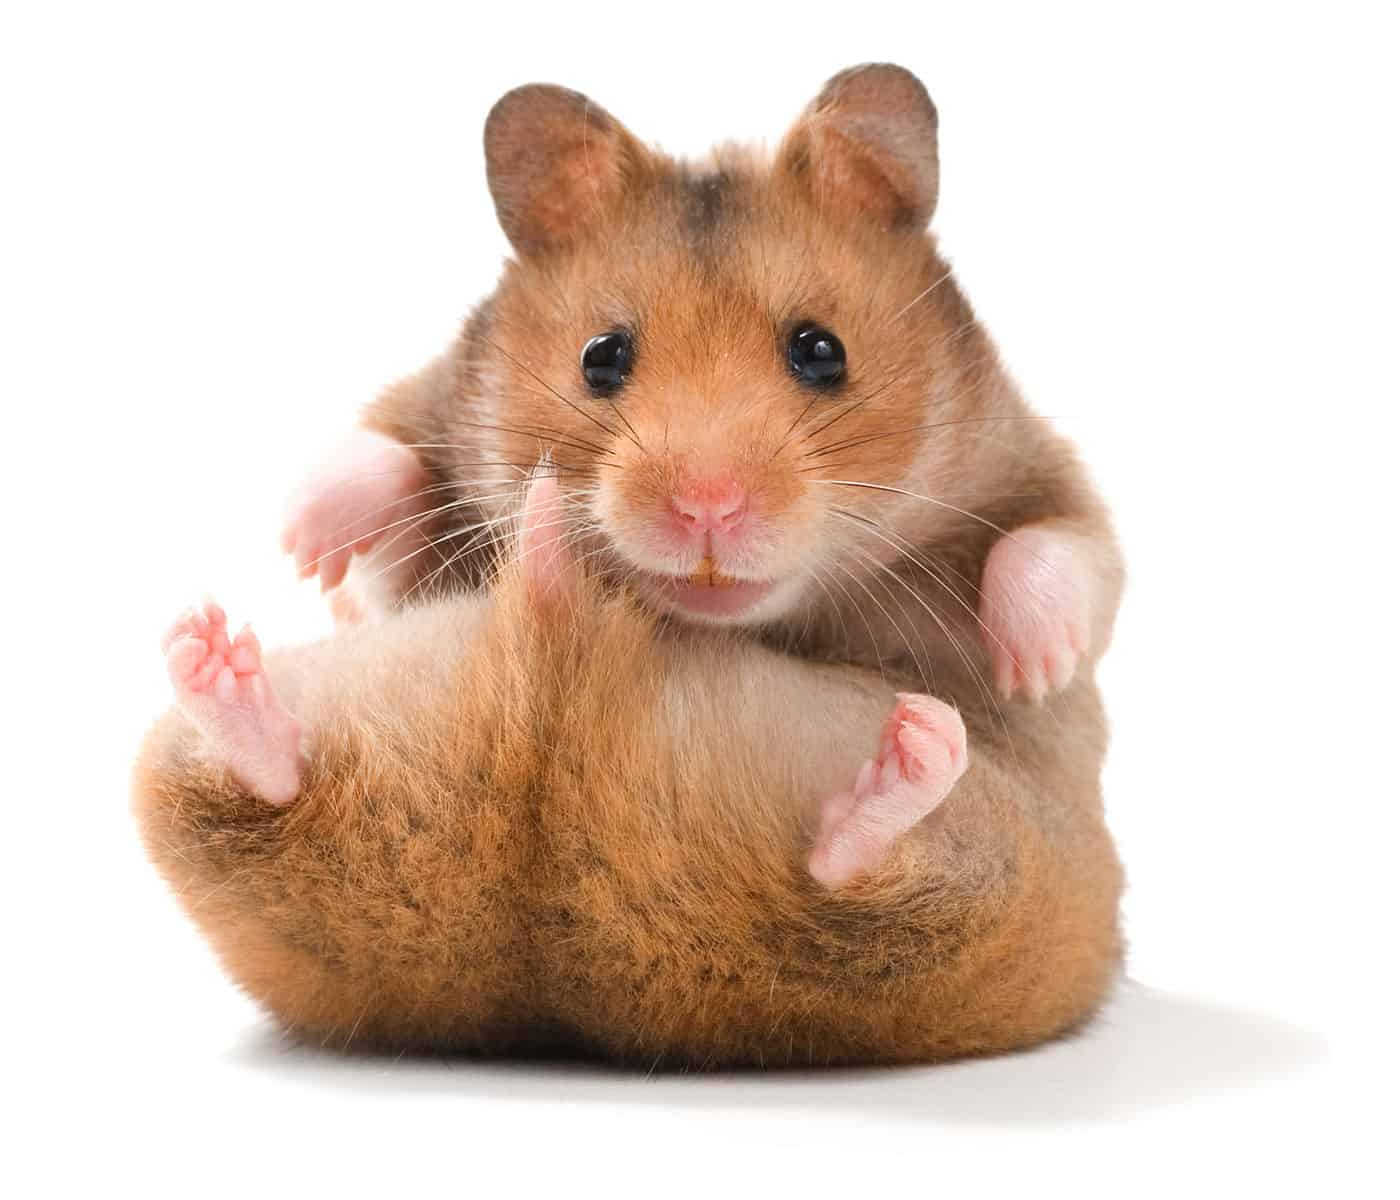 rodent pets for children   yea or nay   unfinished man